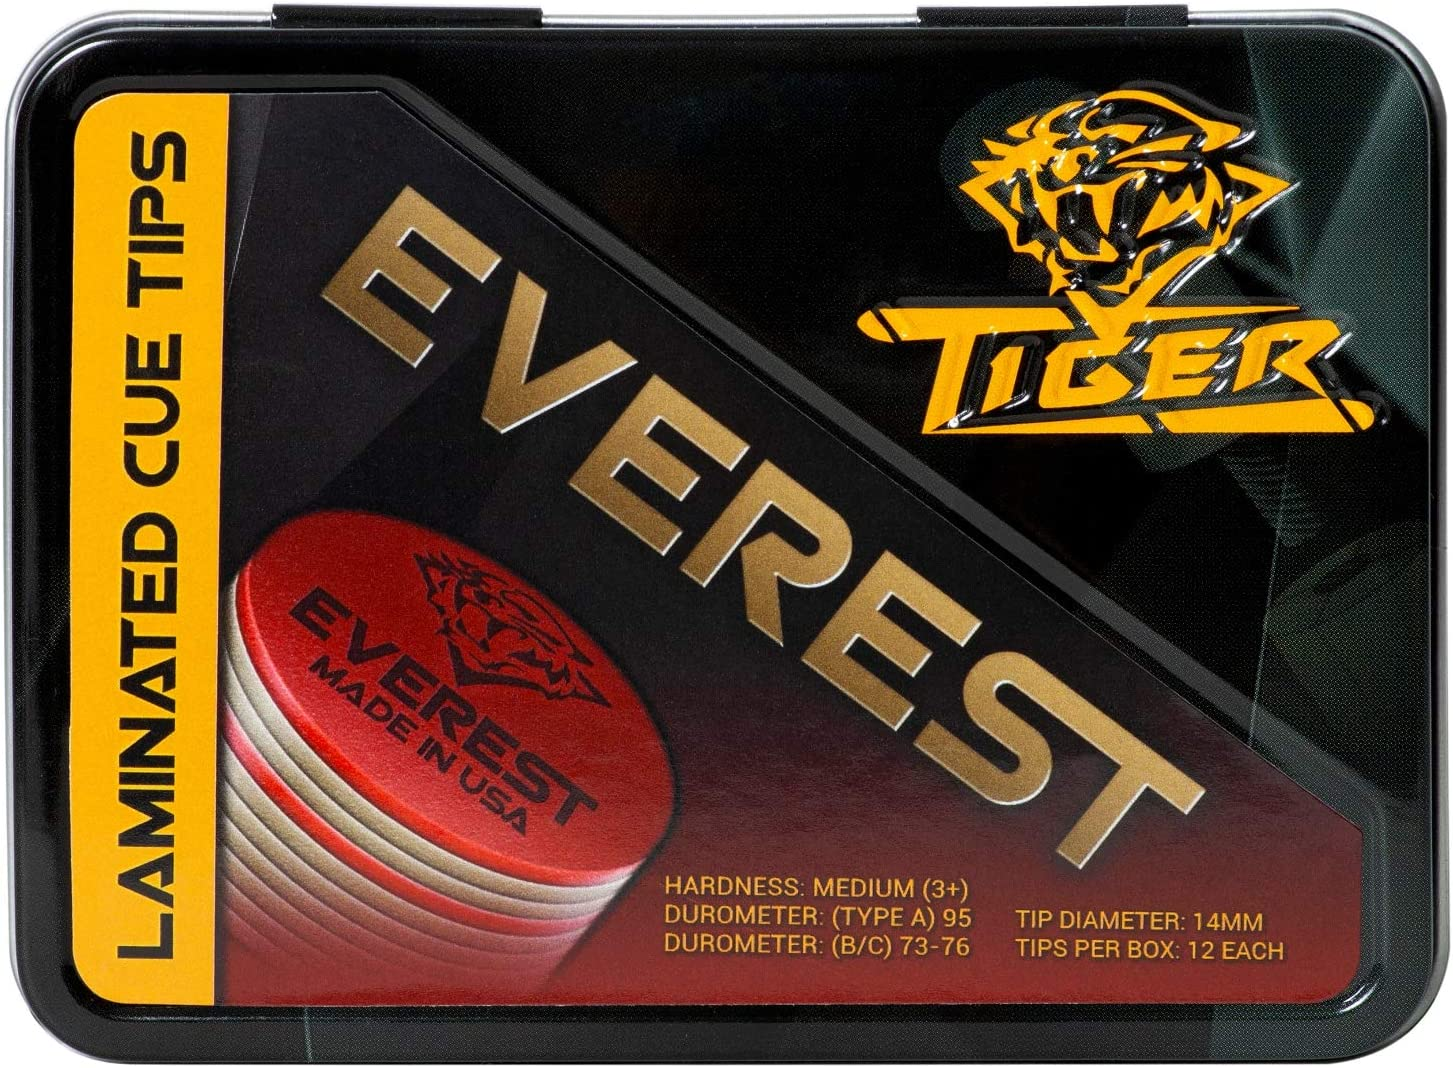 Tiger Everest Laminated Pool Cue Tips Tiger QTY 3 FREE SHIPPING 002001